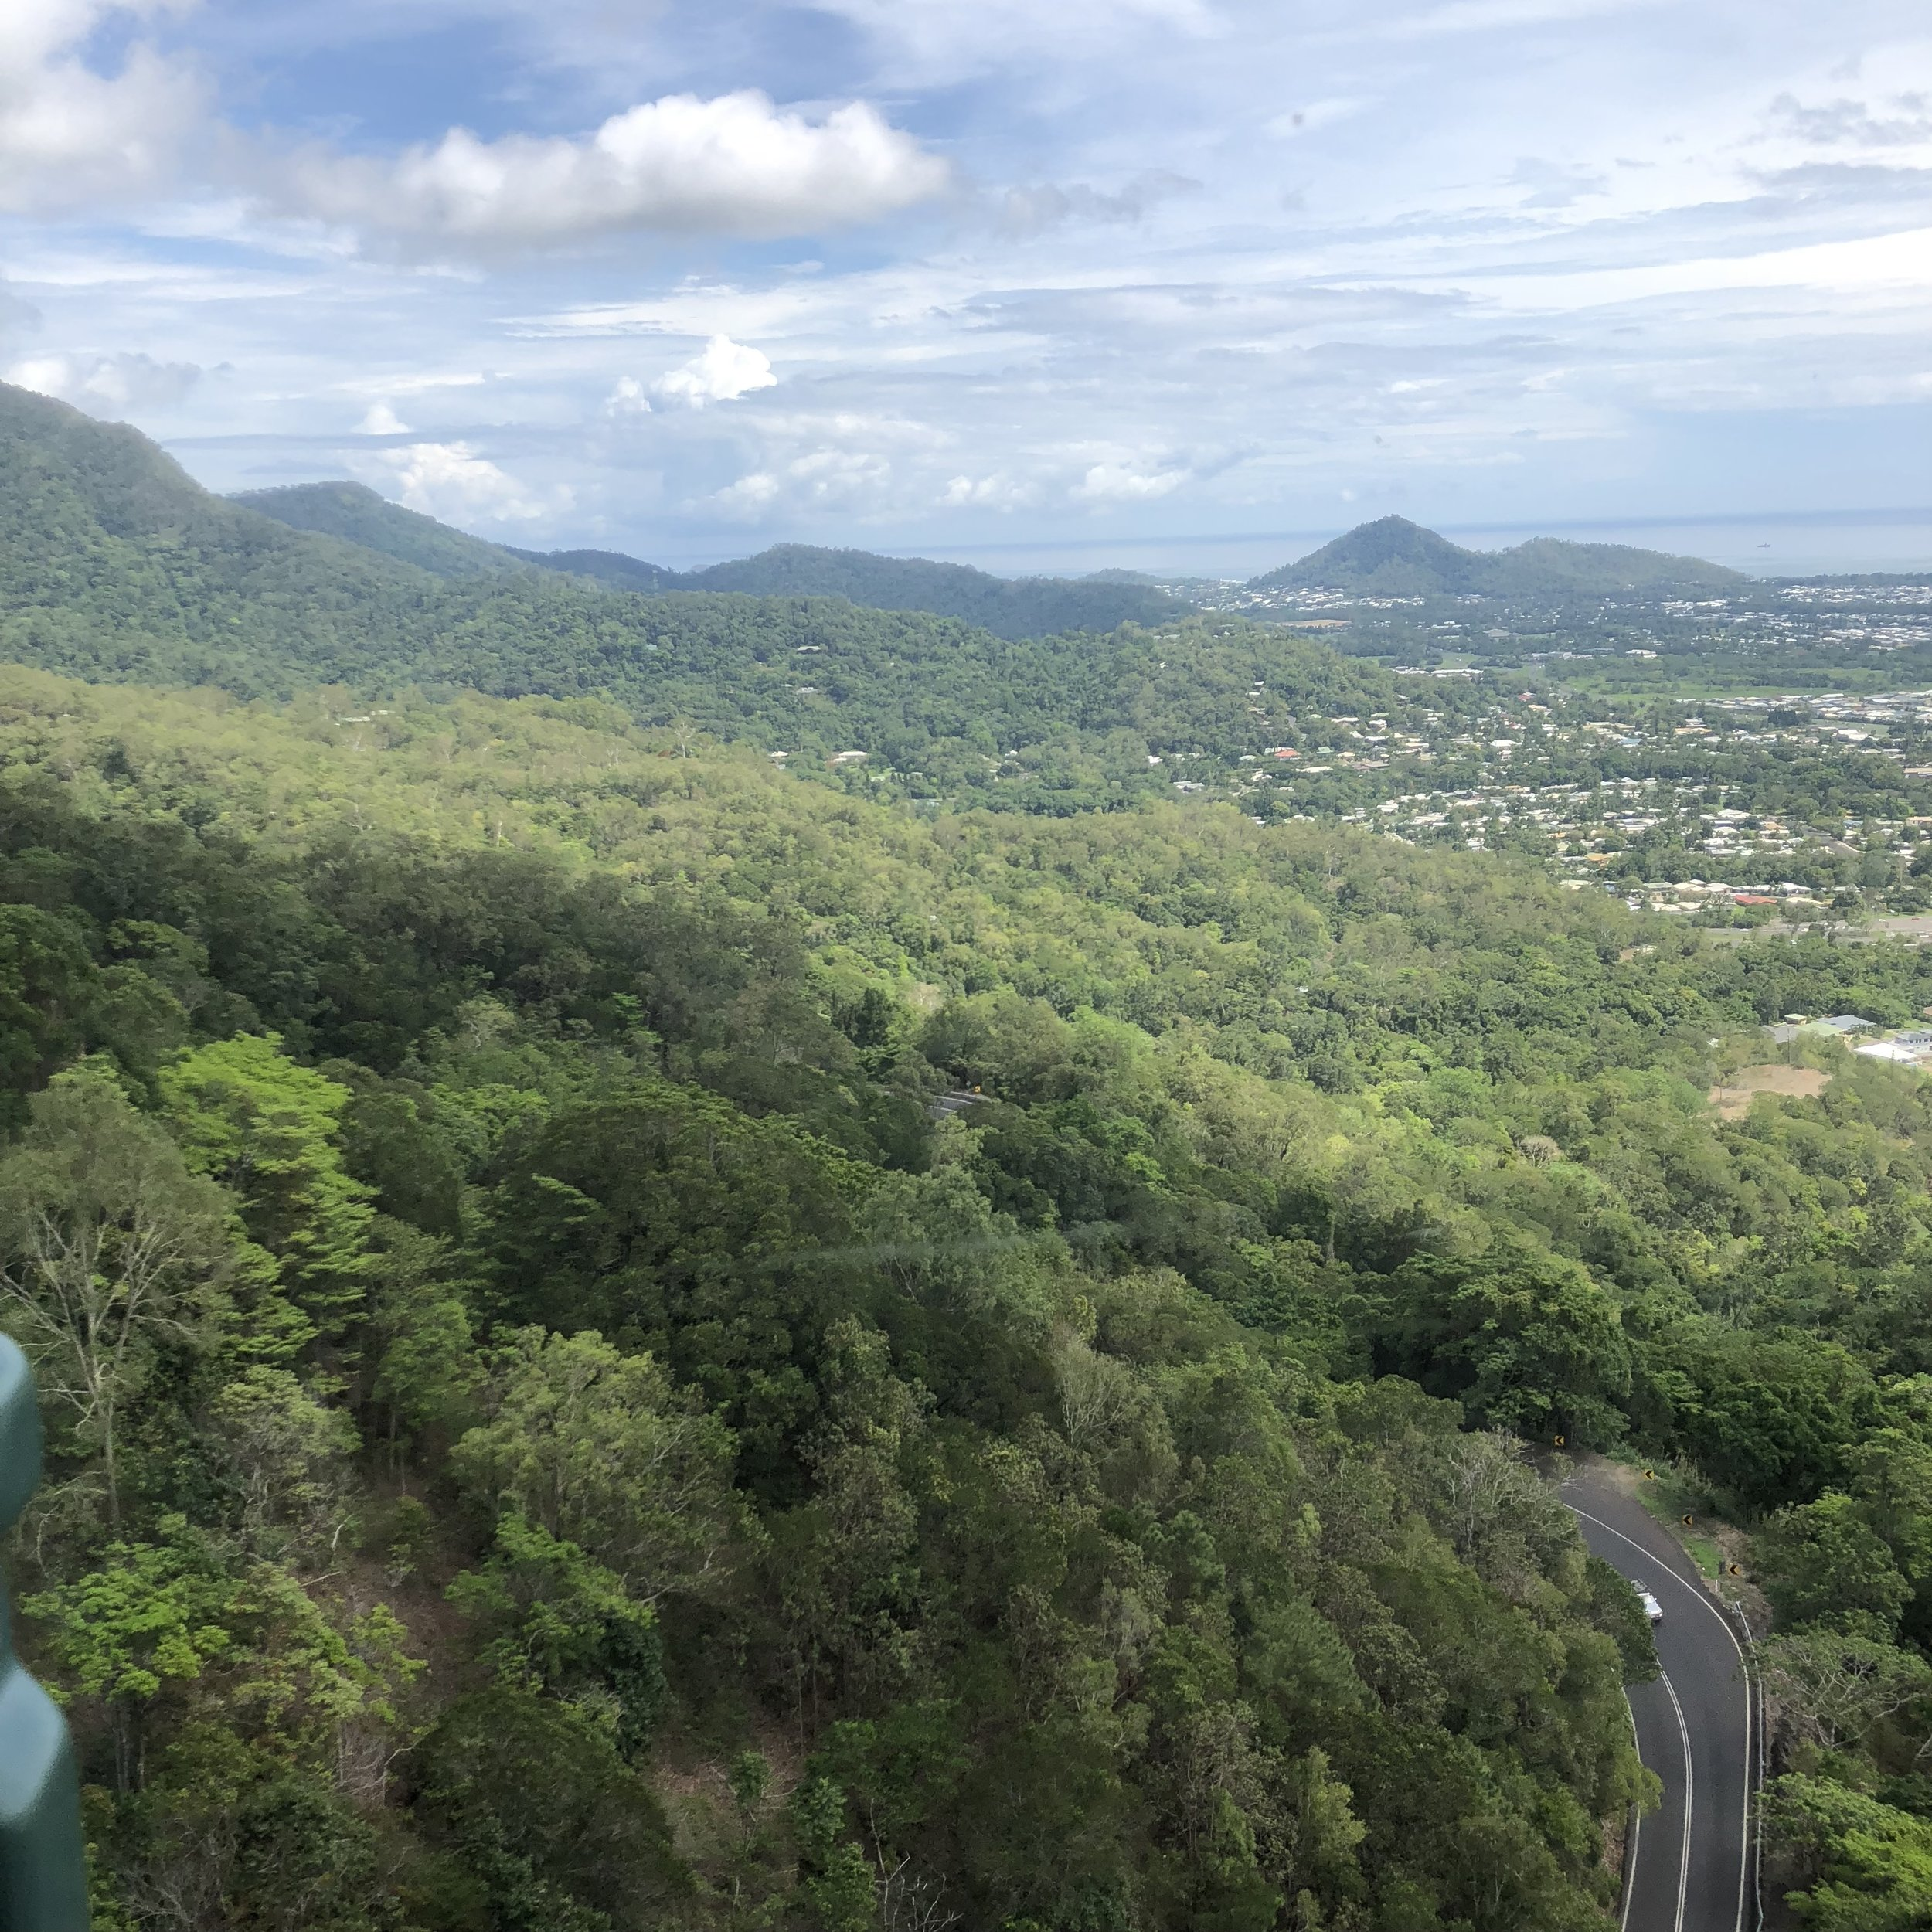 Views from above, on the skyrail!